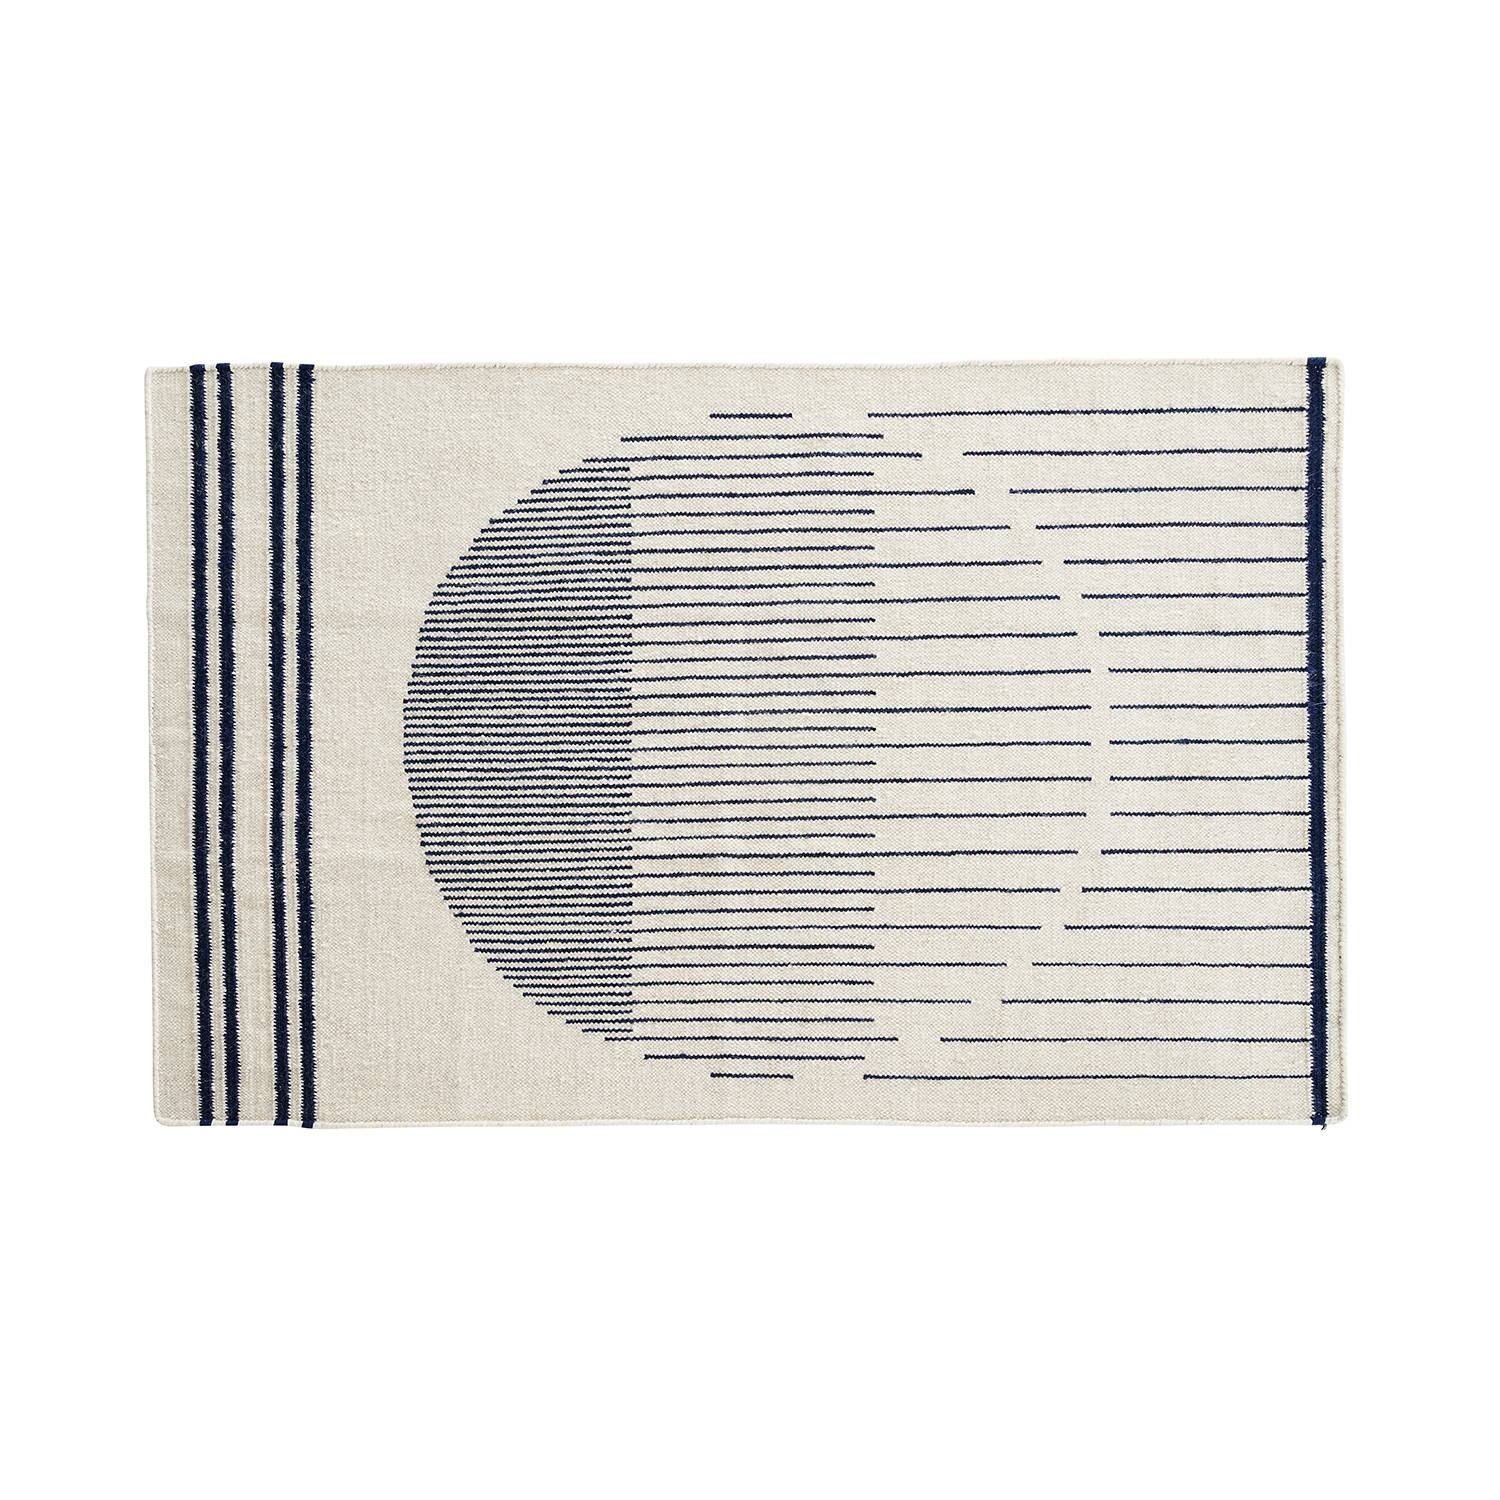 Woud Raining Circle matto 90x140cm, Valkea/Navy